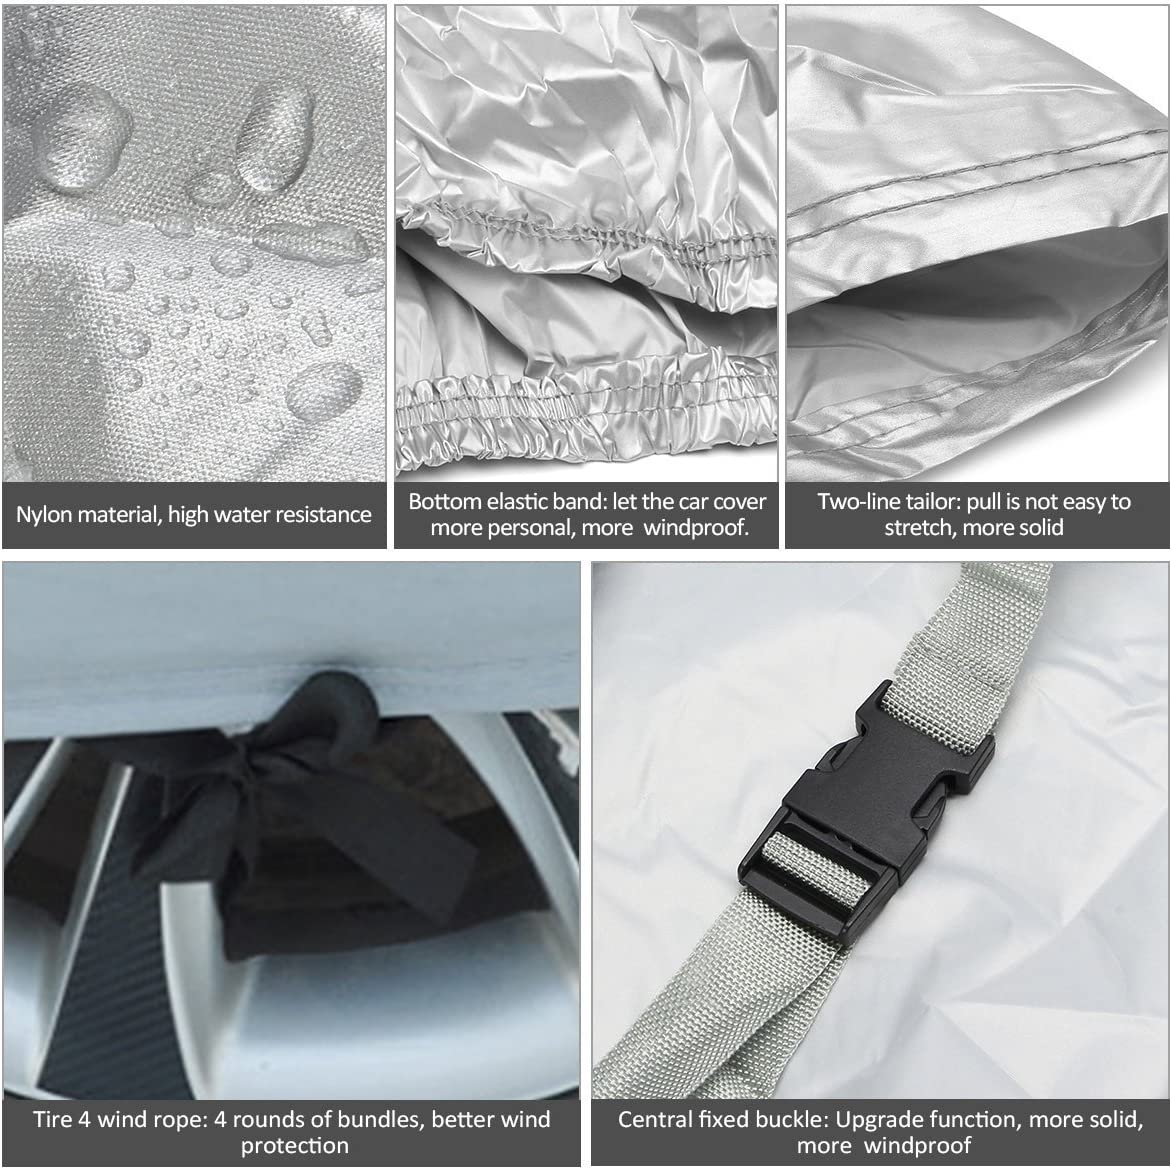 All Weather Indoor Outdoor Car Cover SUV Cover Waterproof//Windproof//Dustproof Resistant Heat,Rain,Snow,Dust,Ice Full Car Cover For Sportage 2012 2013 2014 2015 2016 2017 2018 2019 2020 2021